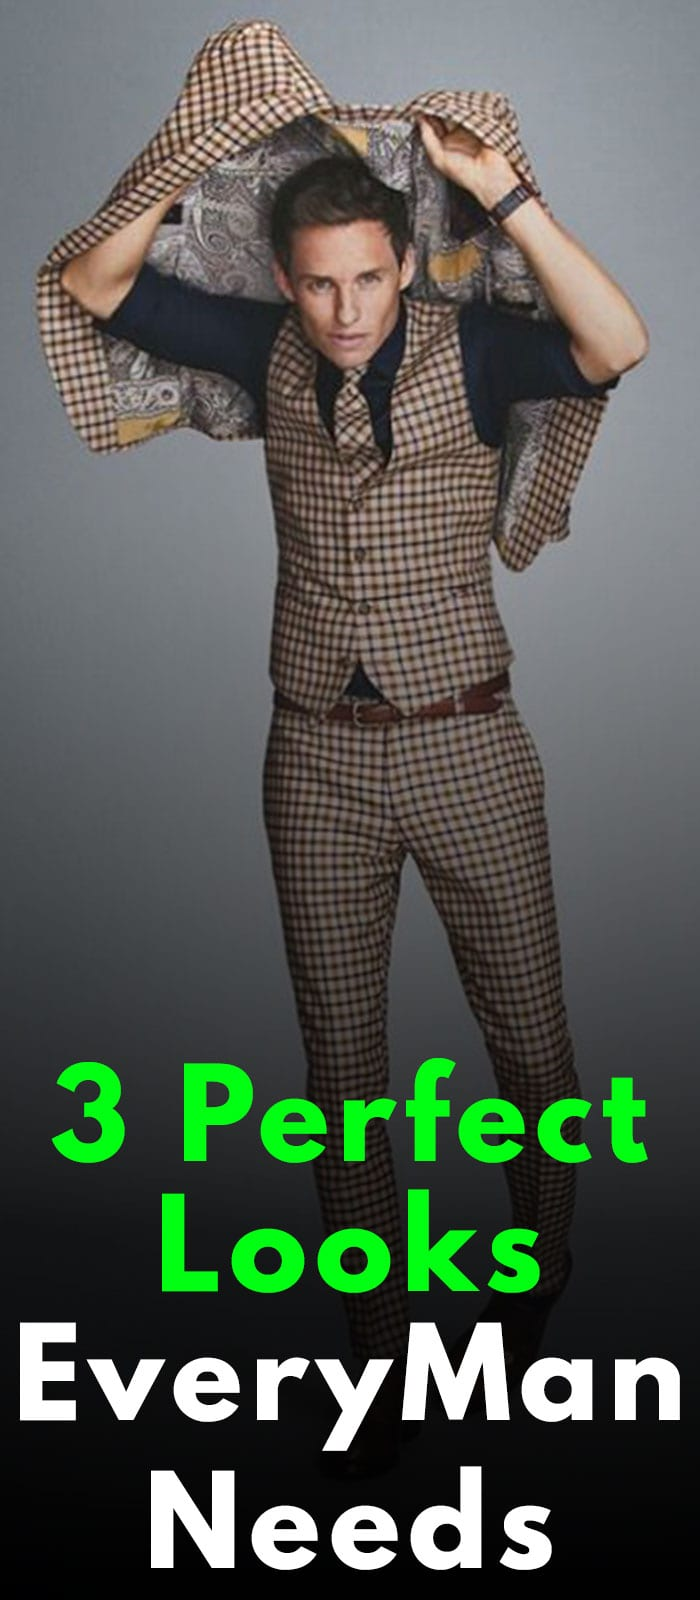 3 Perfect Looks Every Man Needs in 2020